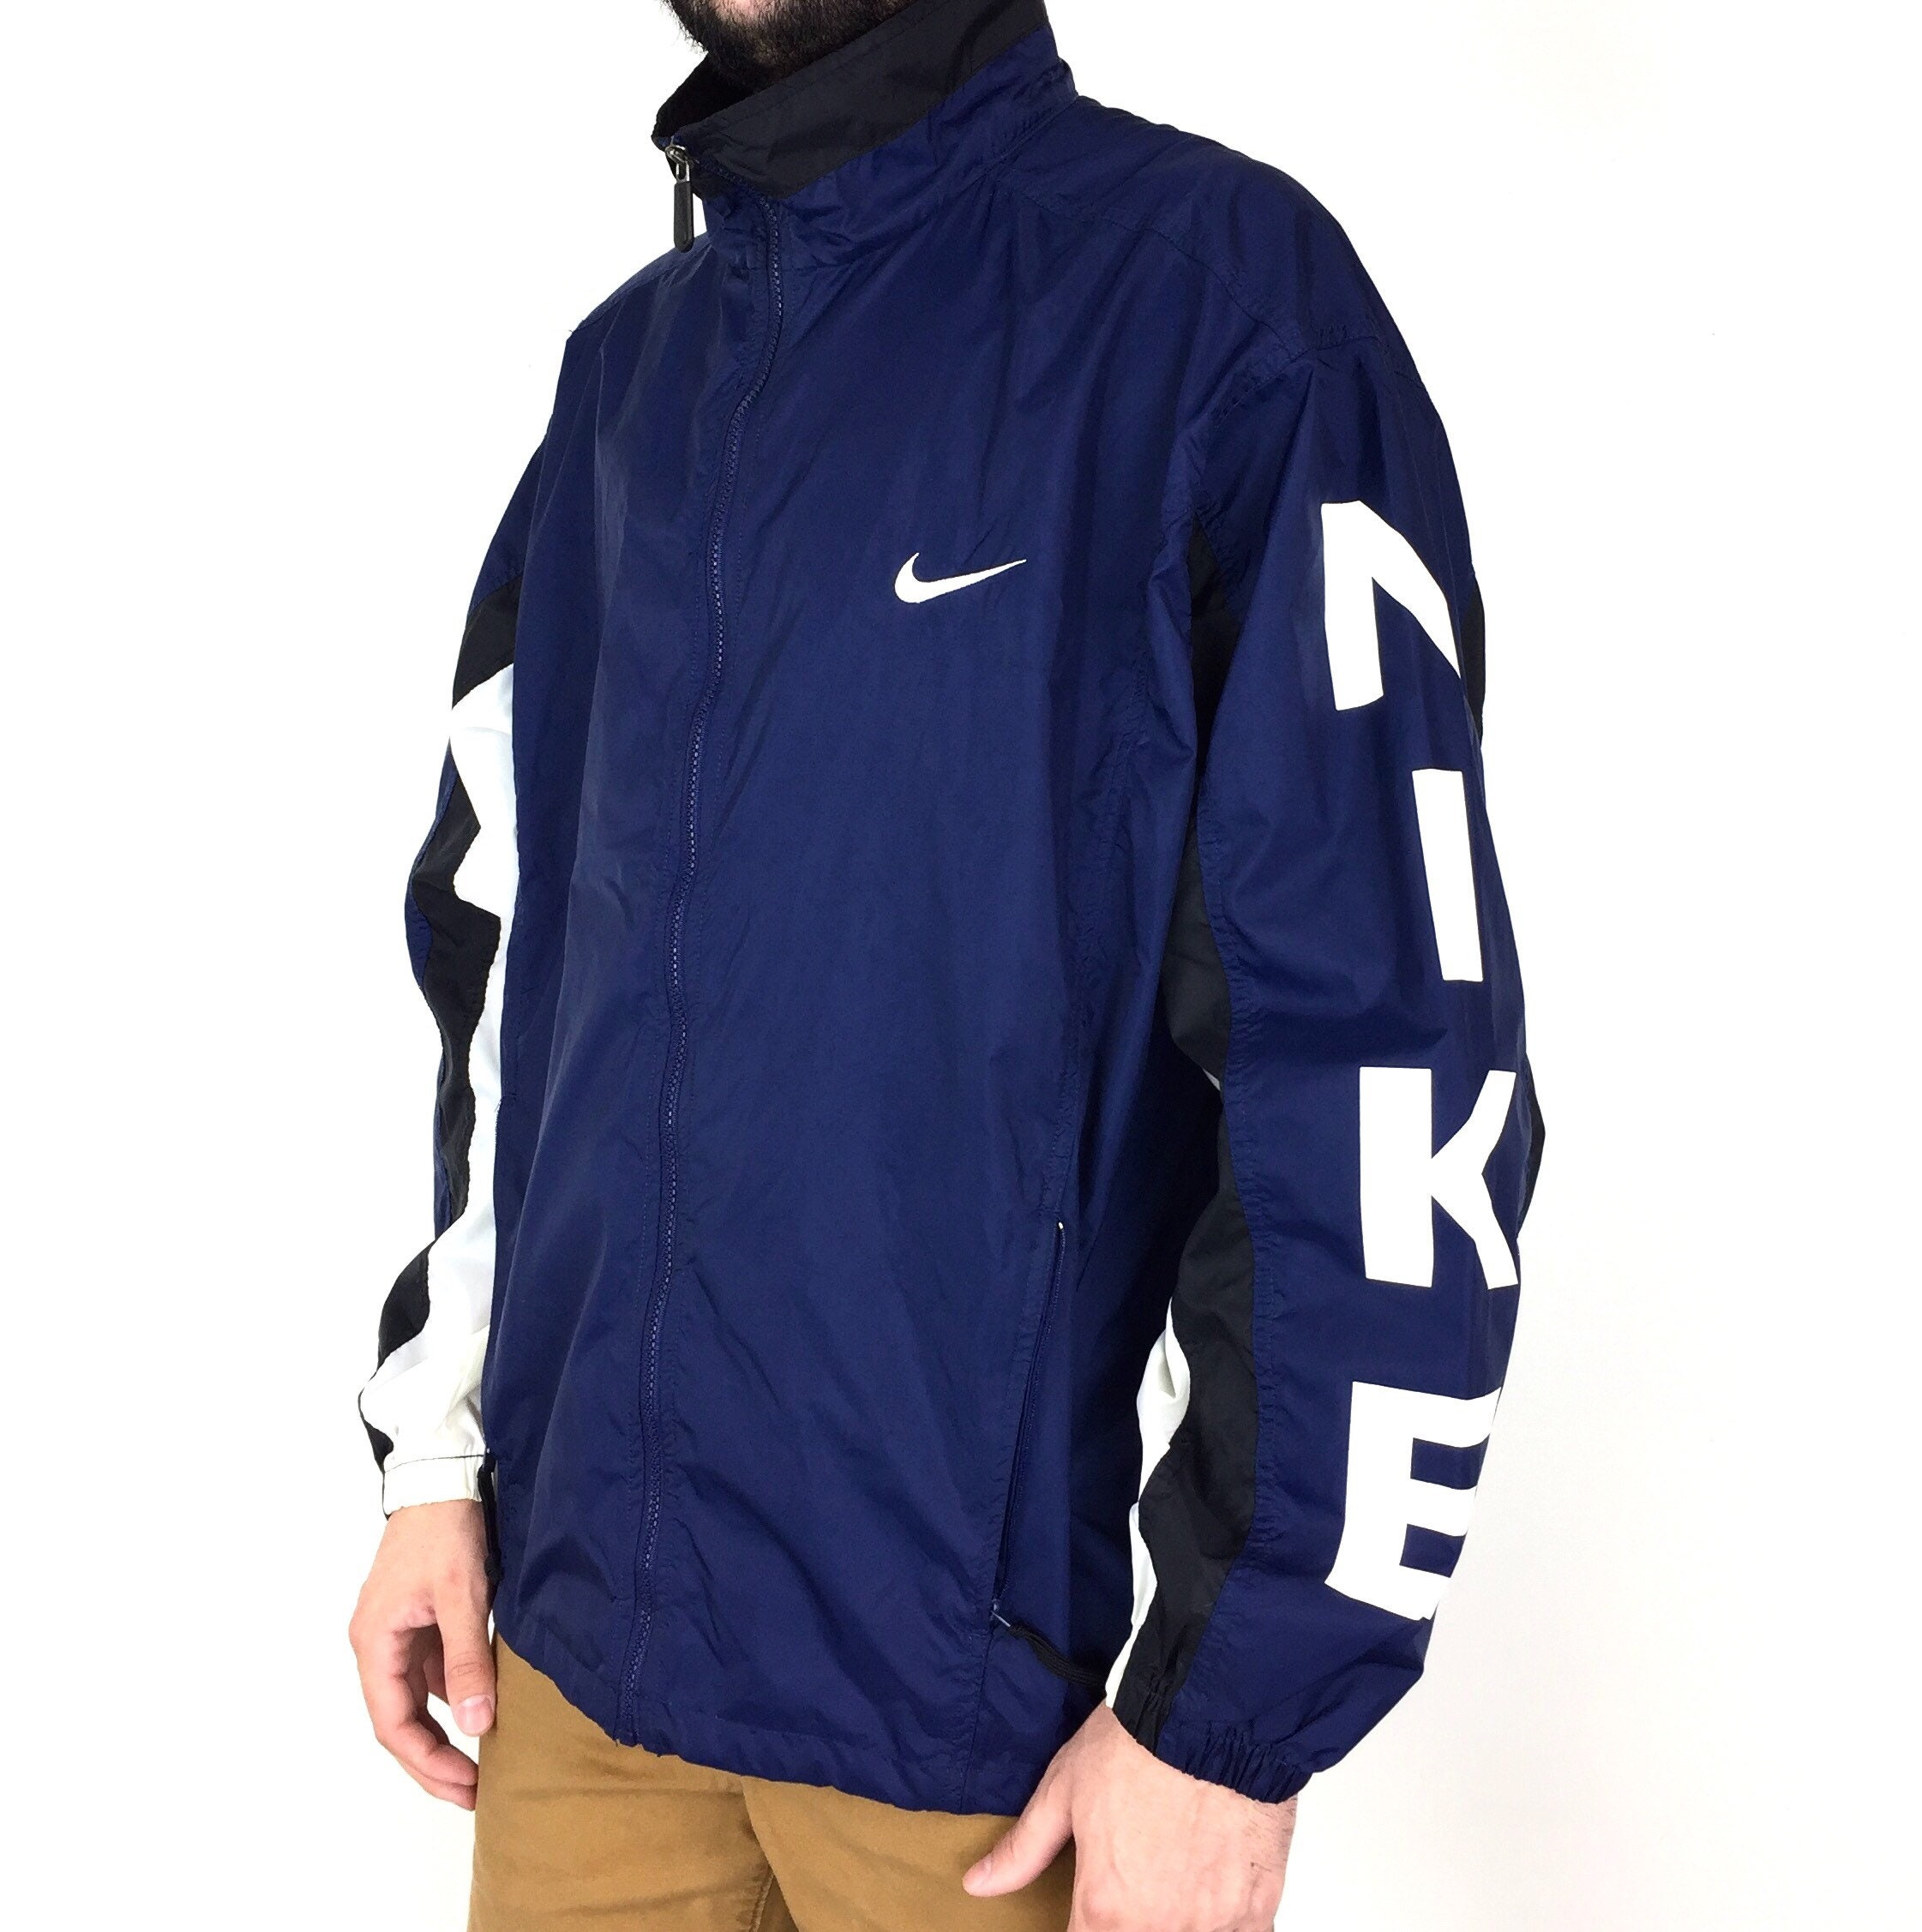 5ecc127e66 Rare Vintage 90s Nike grey silver tag navy blue double sleeve arm spell out  zip up lightweight windbreaker jacket - Size XL